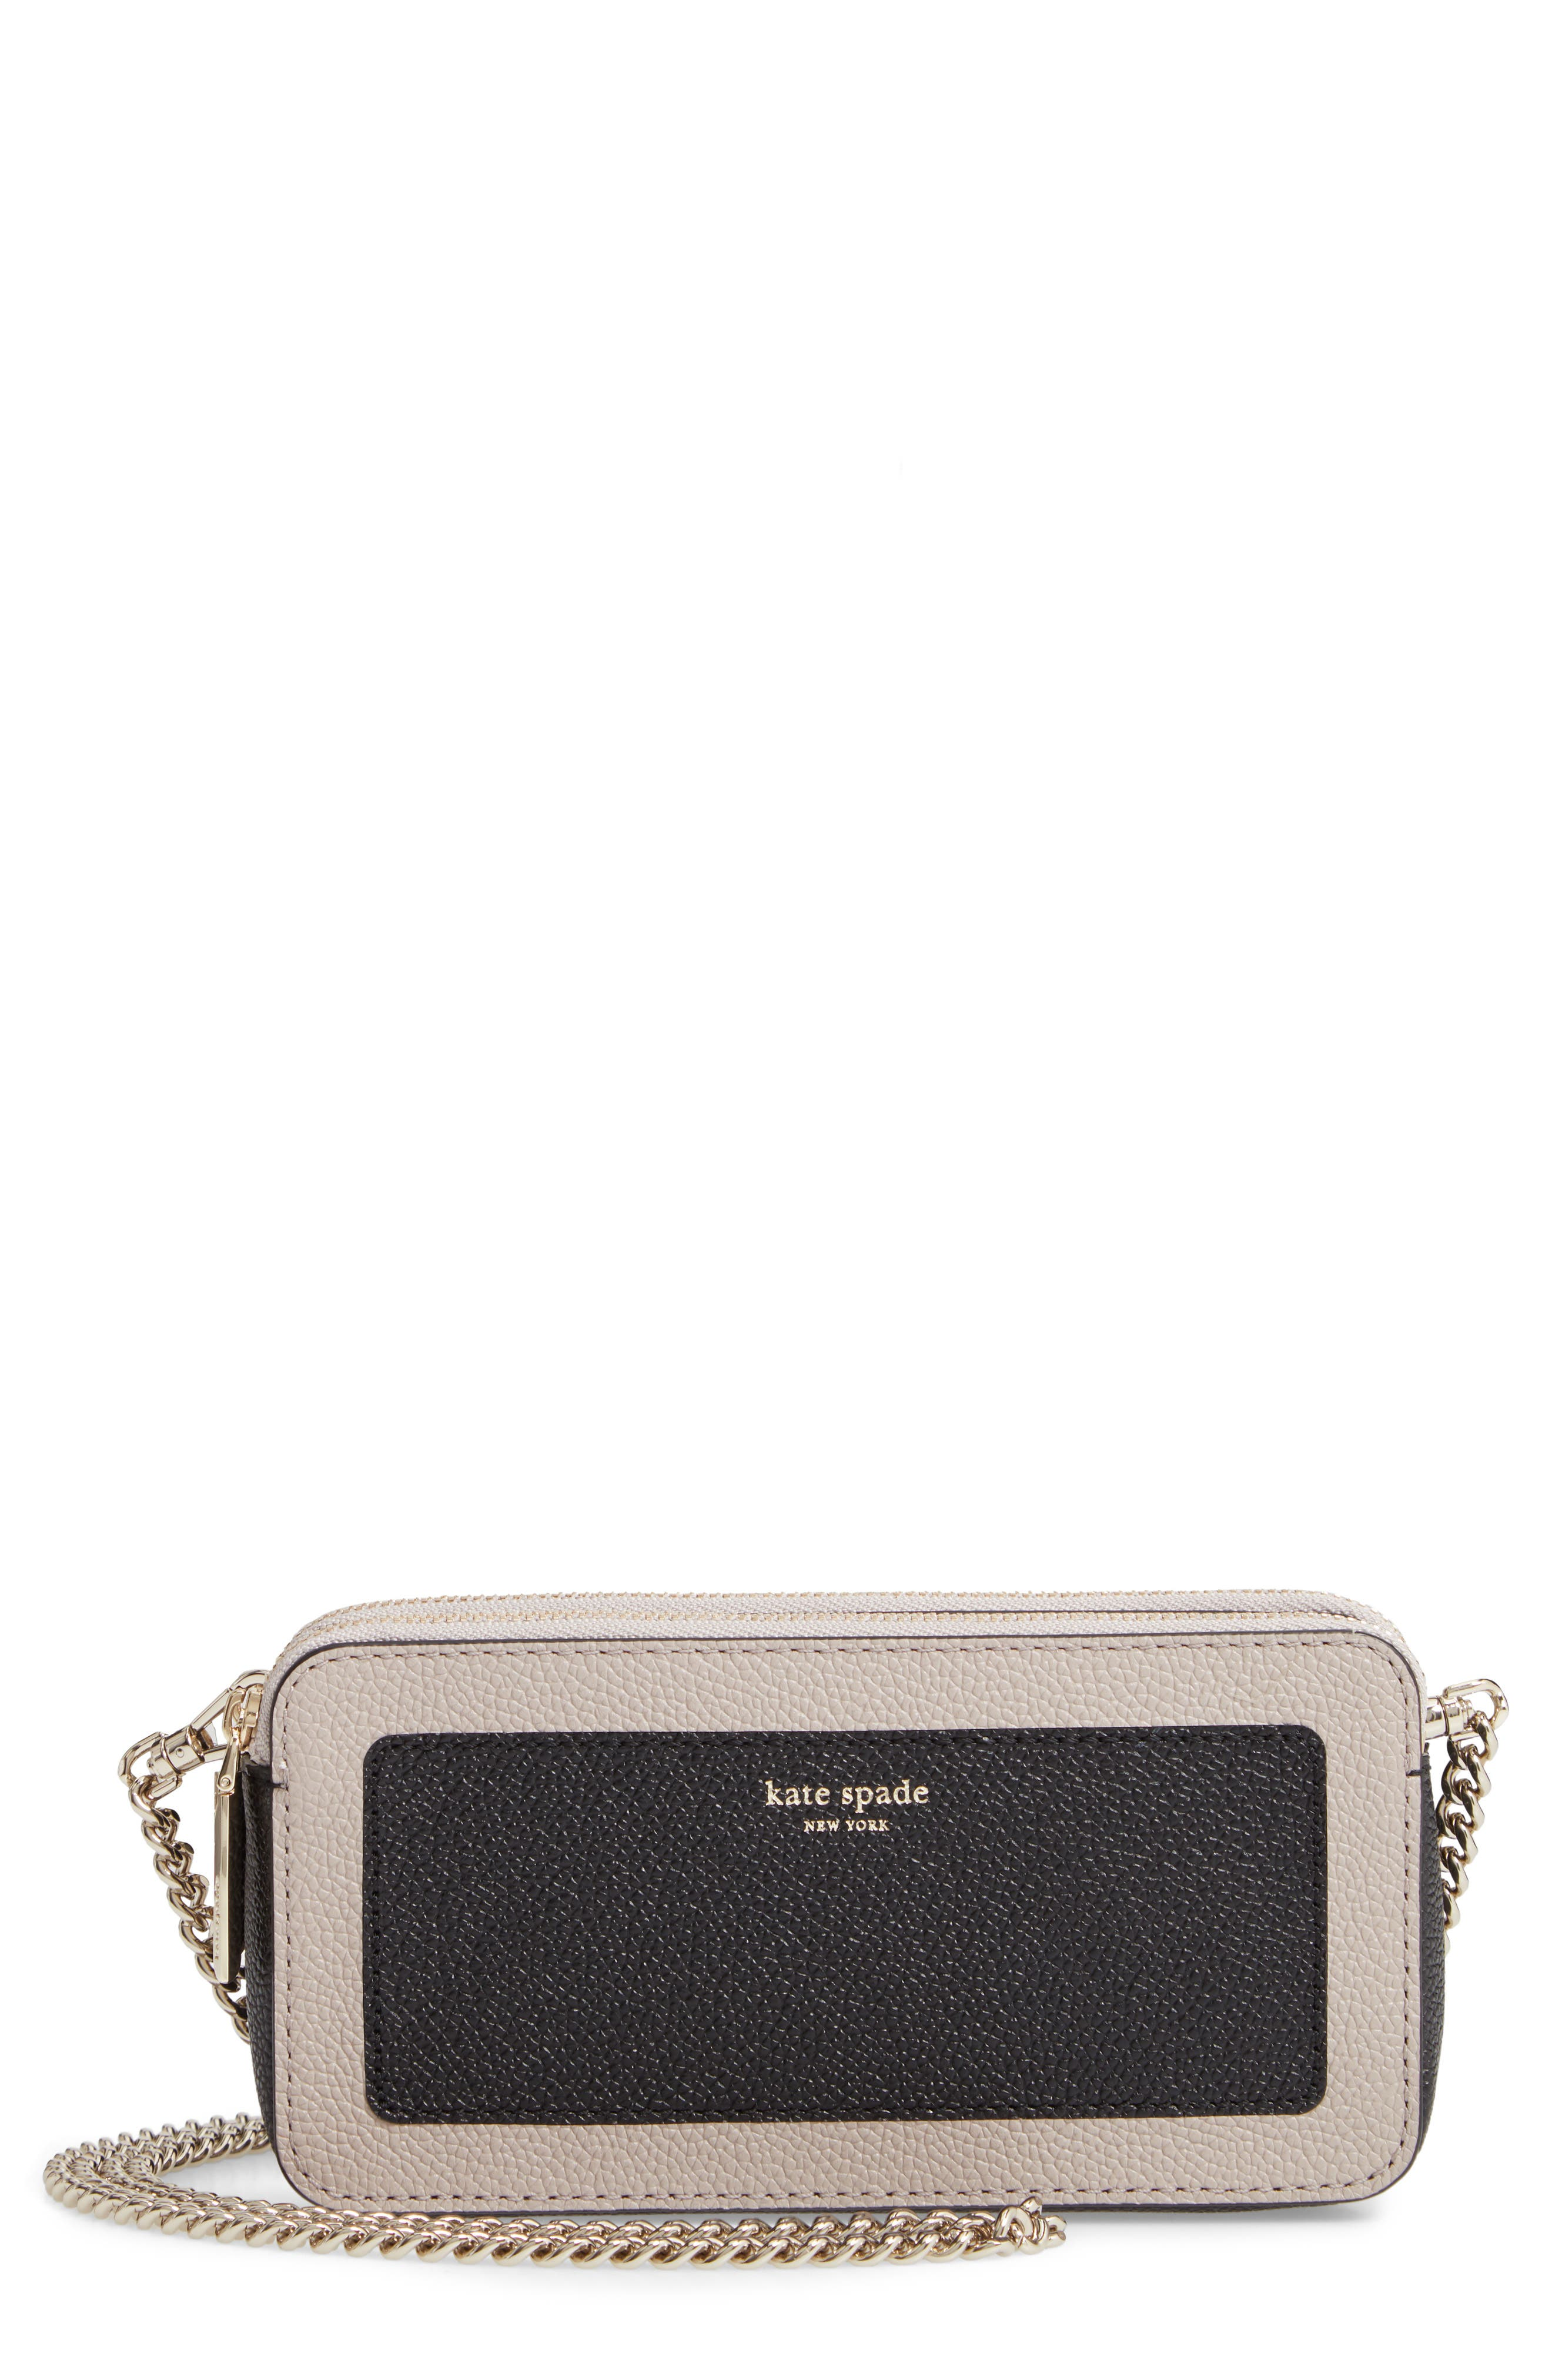 margaux - double zip mini crossbody bag, Main, color, BLACK/ WARM TAUPE